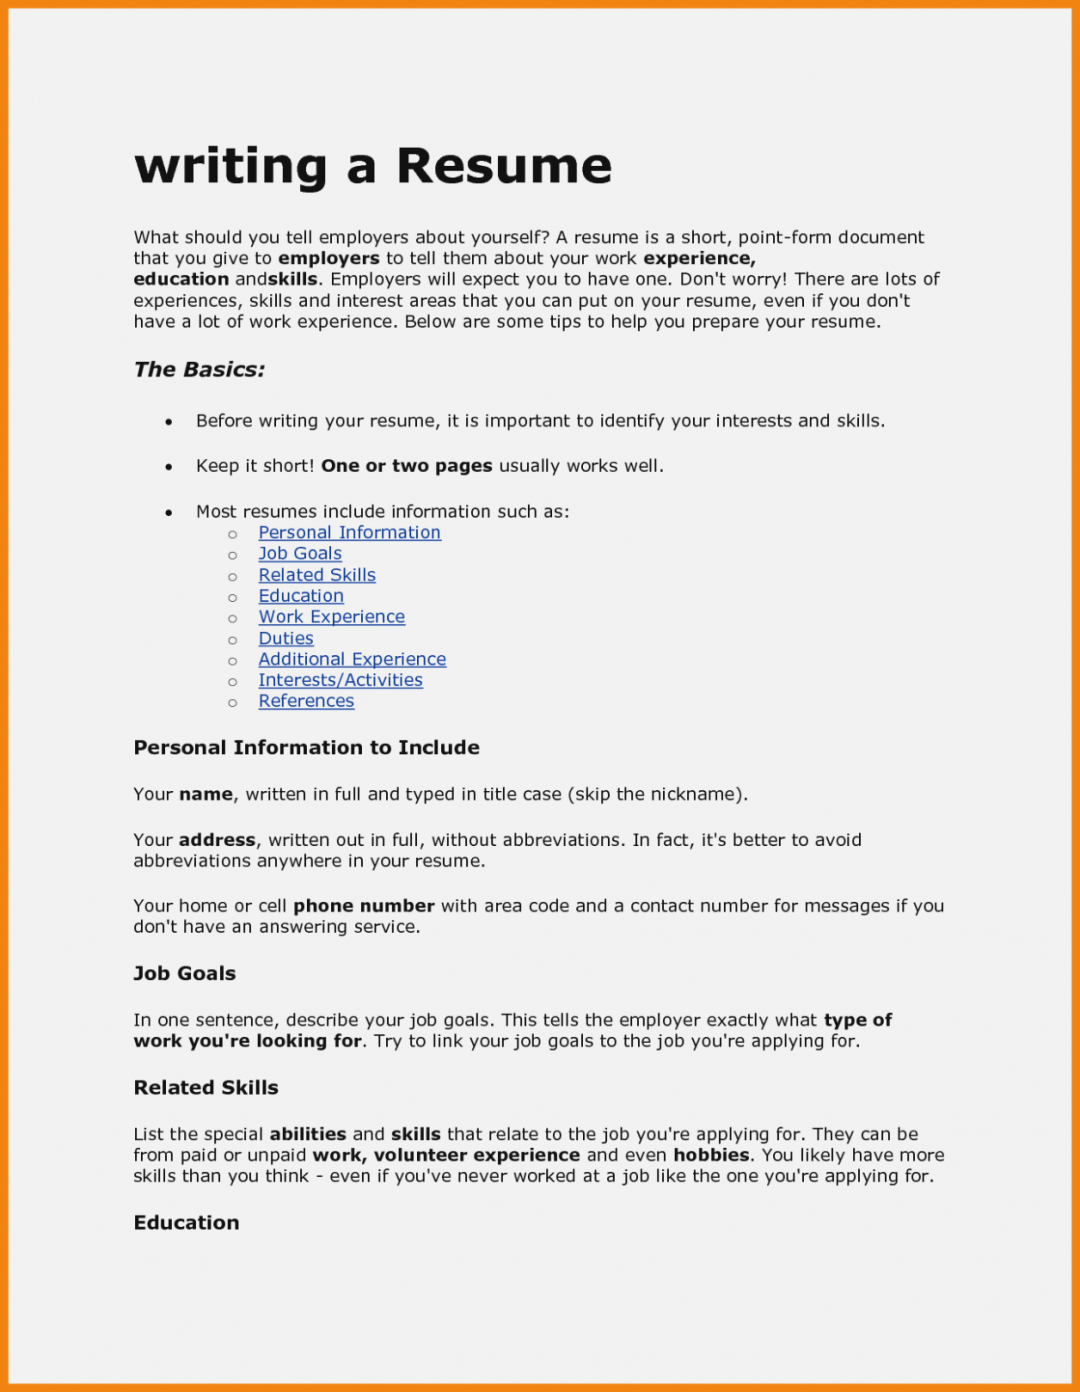 How To Write A Resume For A Job How To Write Resume For Job Fair How To Write Resume For Job Fair how to write a resume for a job wikiresume.com